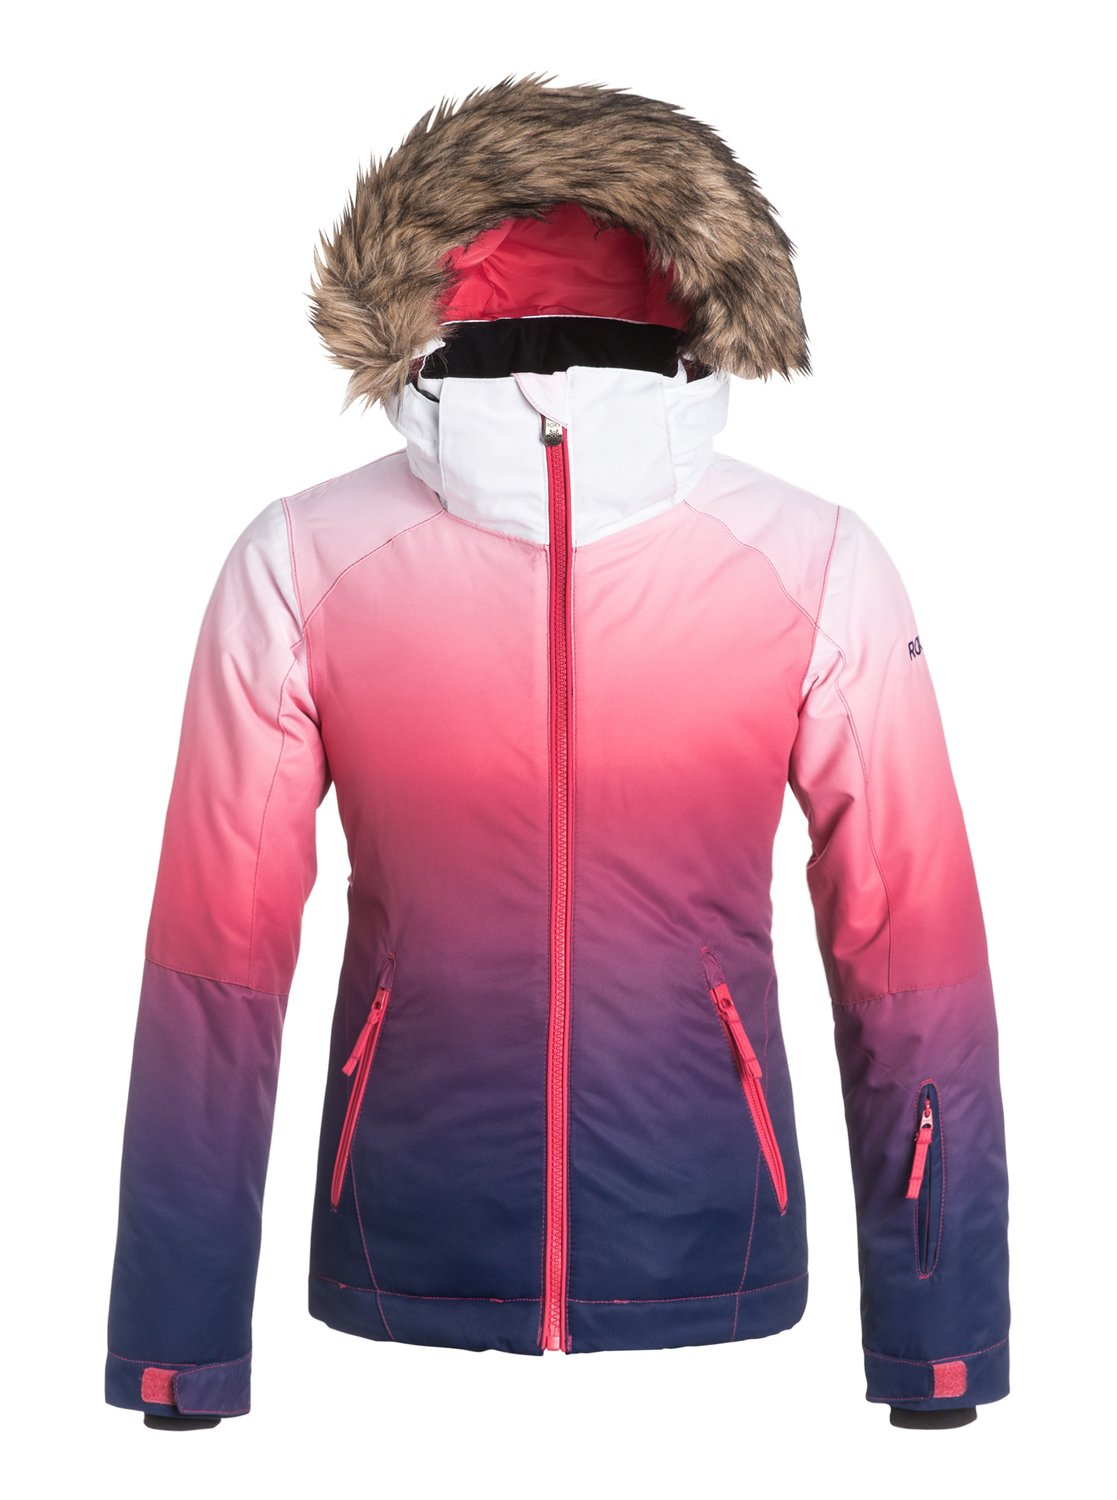 Сноубордическая детская куртка Jet Ski GradientThe Jet Ski Gradient snow jacket for women comes complete with a sporty yet feminine slim fit and cosy removable fur. The fashionable dip-dye gradient effect has been woven with 10K ROXY DryFlight® technology waterproofing for reliable waterproof and breathable protection in a wide range of winter conditions. Warmflight® level 2 insulation provides low-bulk warmth and critically-taped seams for extra protection in the most exposed areas.<br>